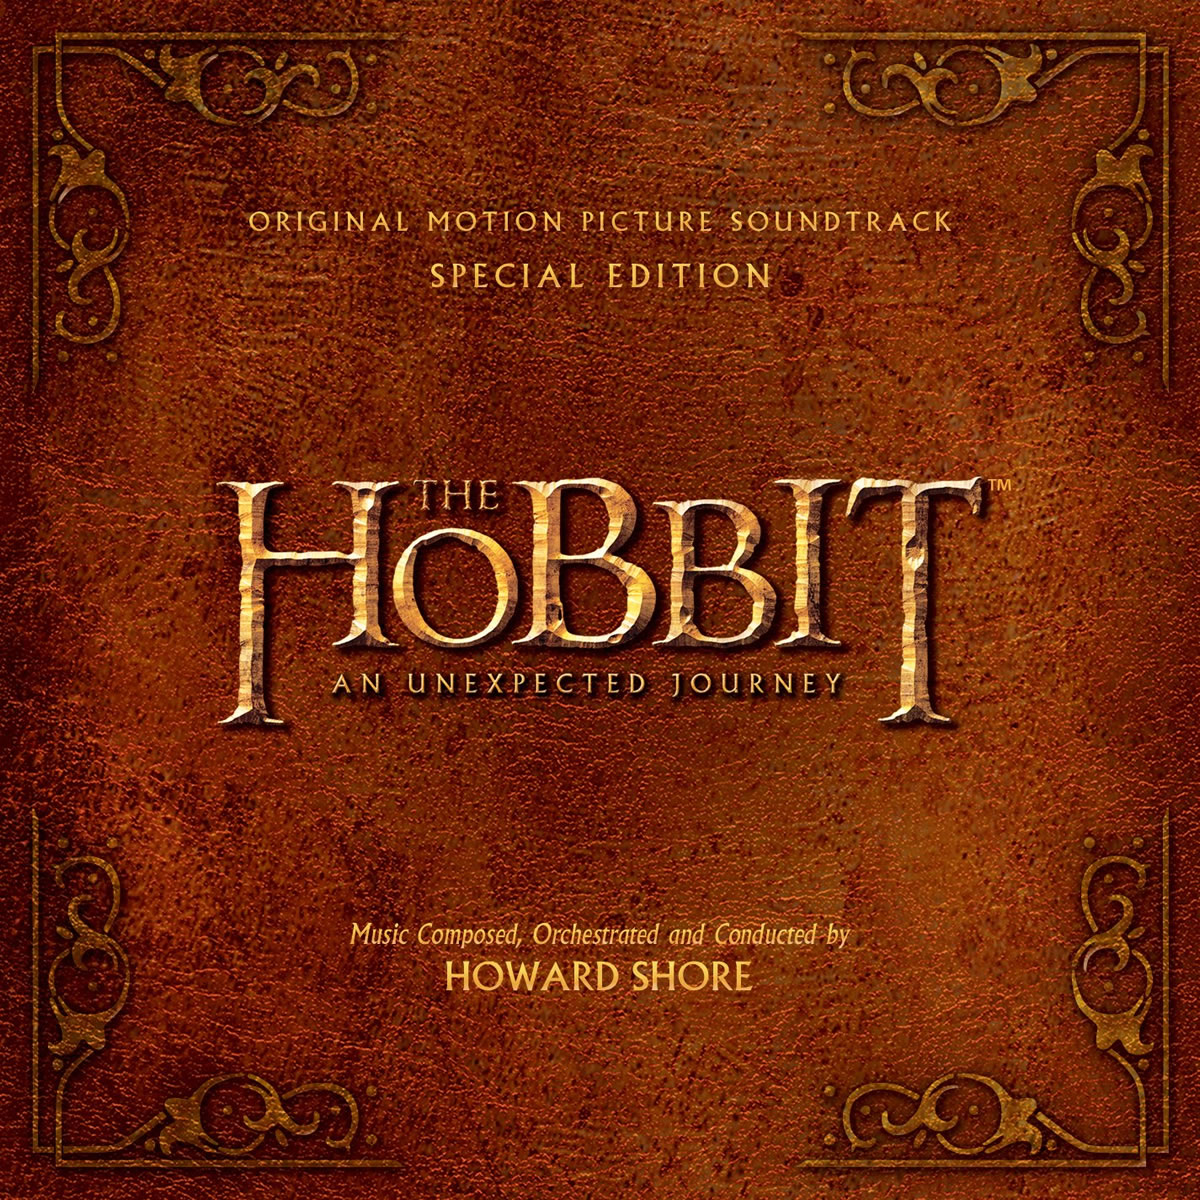 THE HOBBIT: AN UNEXPECTED JOURNEY - ORIGINAL MOTION PICTURE SOUNDTRACK Special Edition (2 AUDIO CDs)